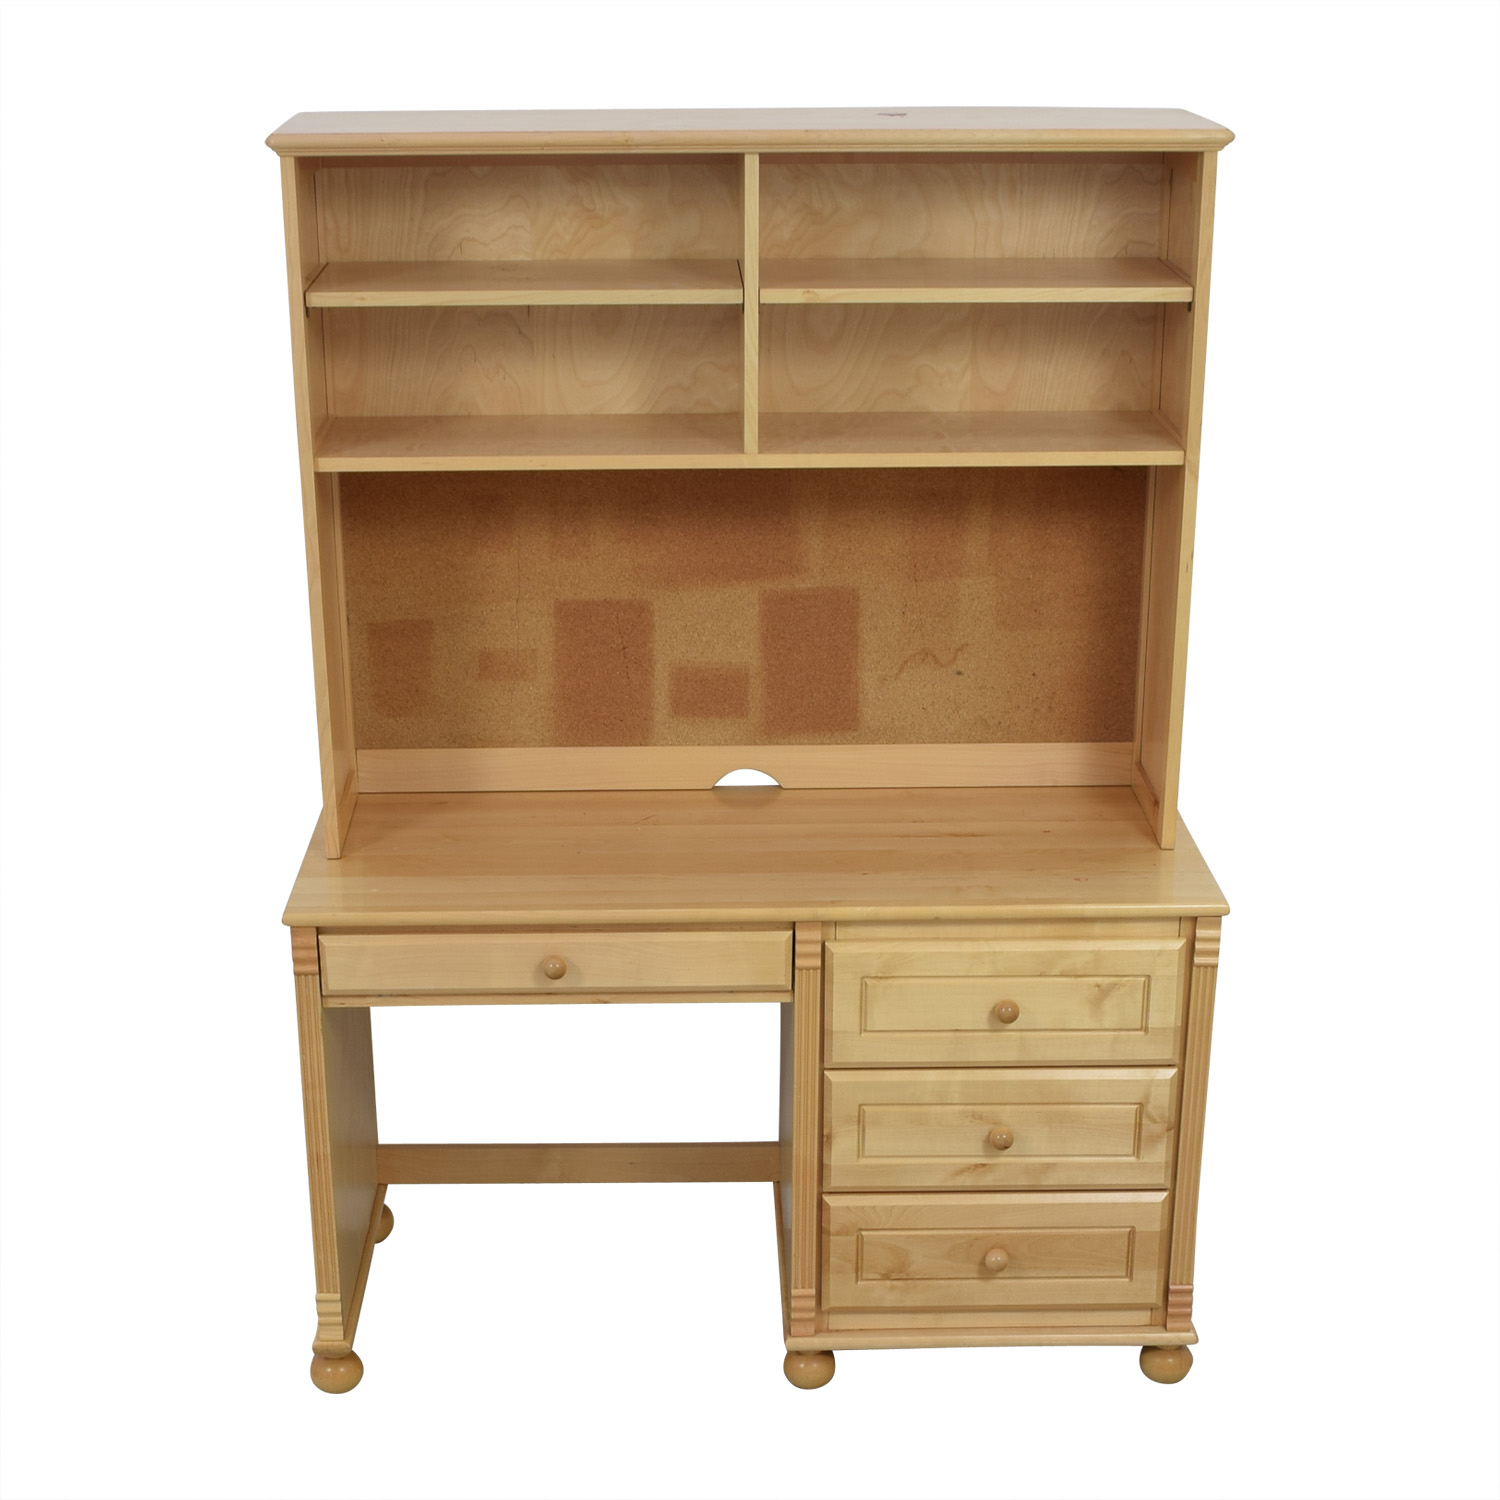 Bellini Bellini Natural Wood Desk with Hutch Sofas